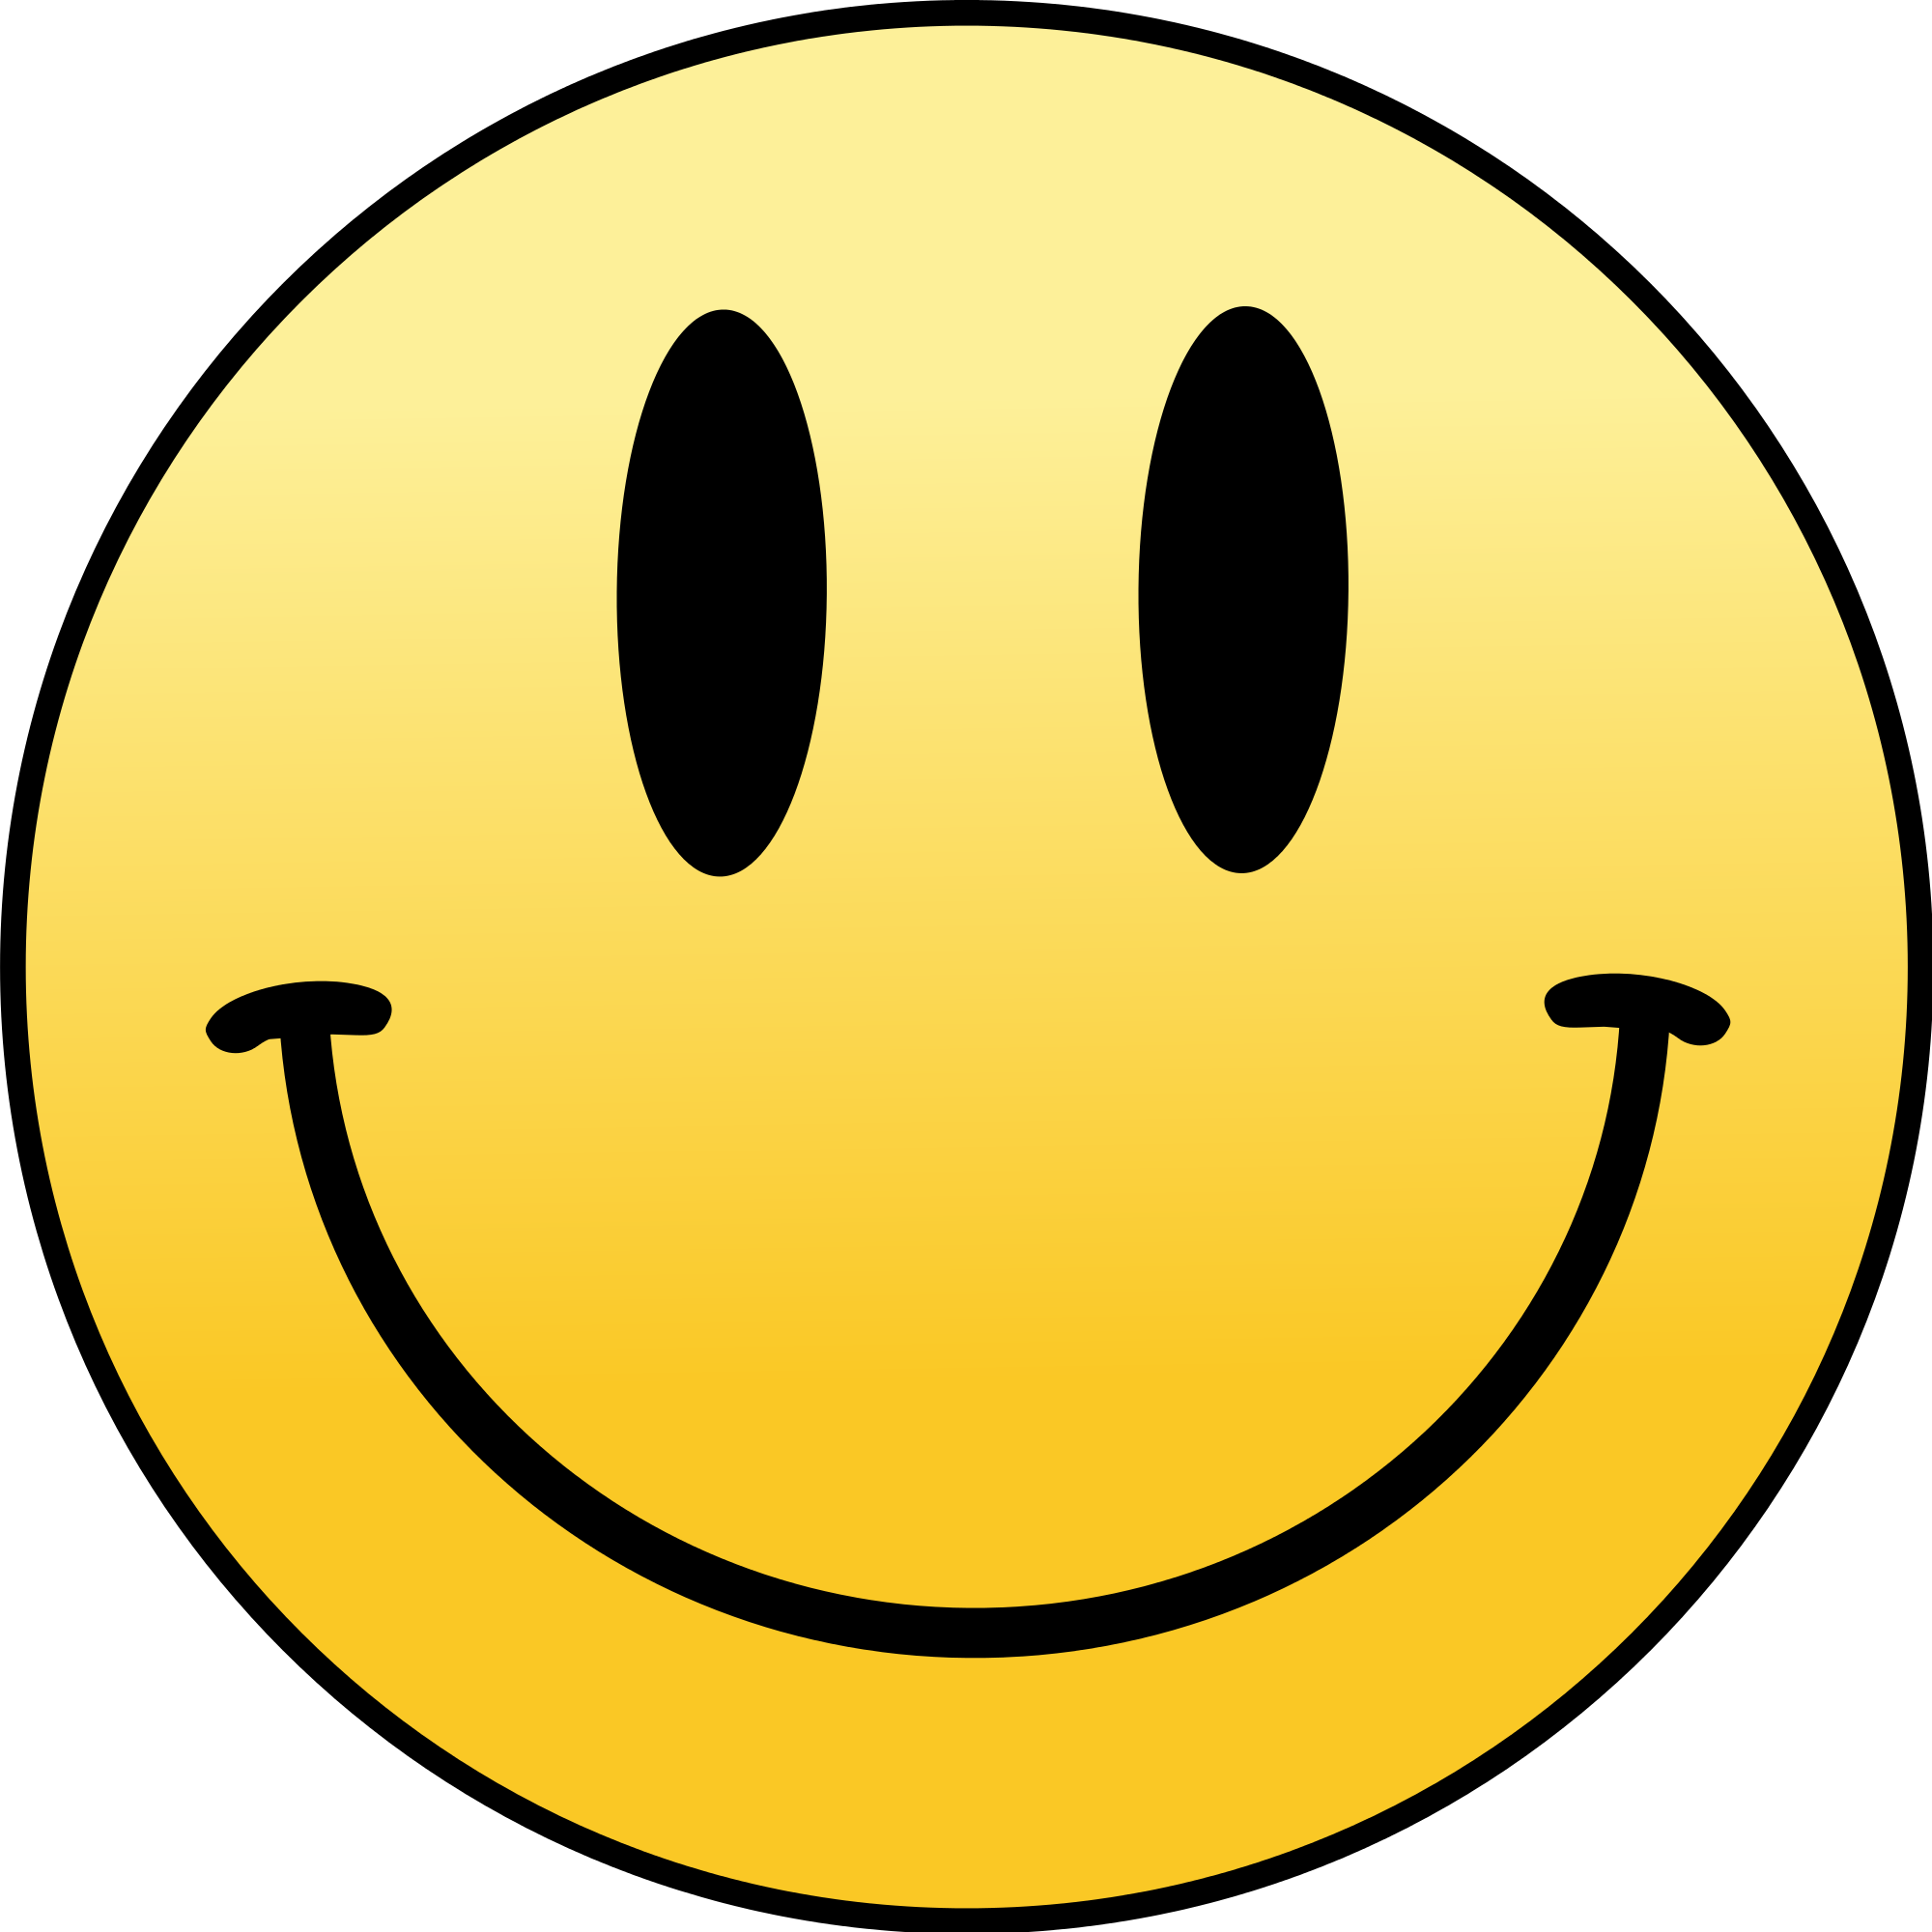 smiley PNG36233